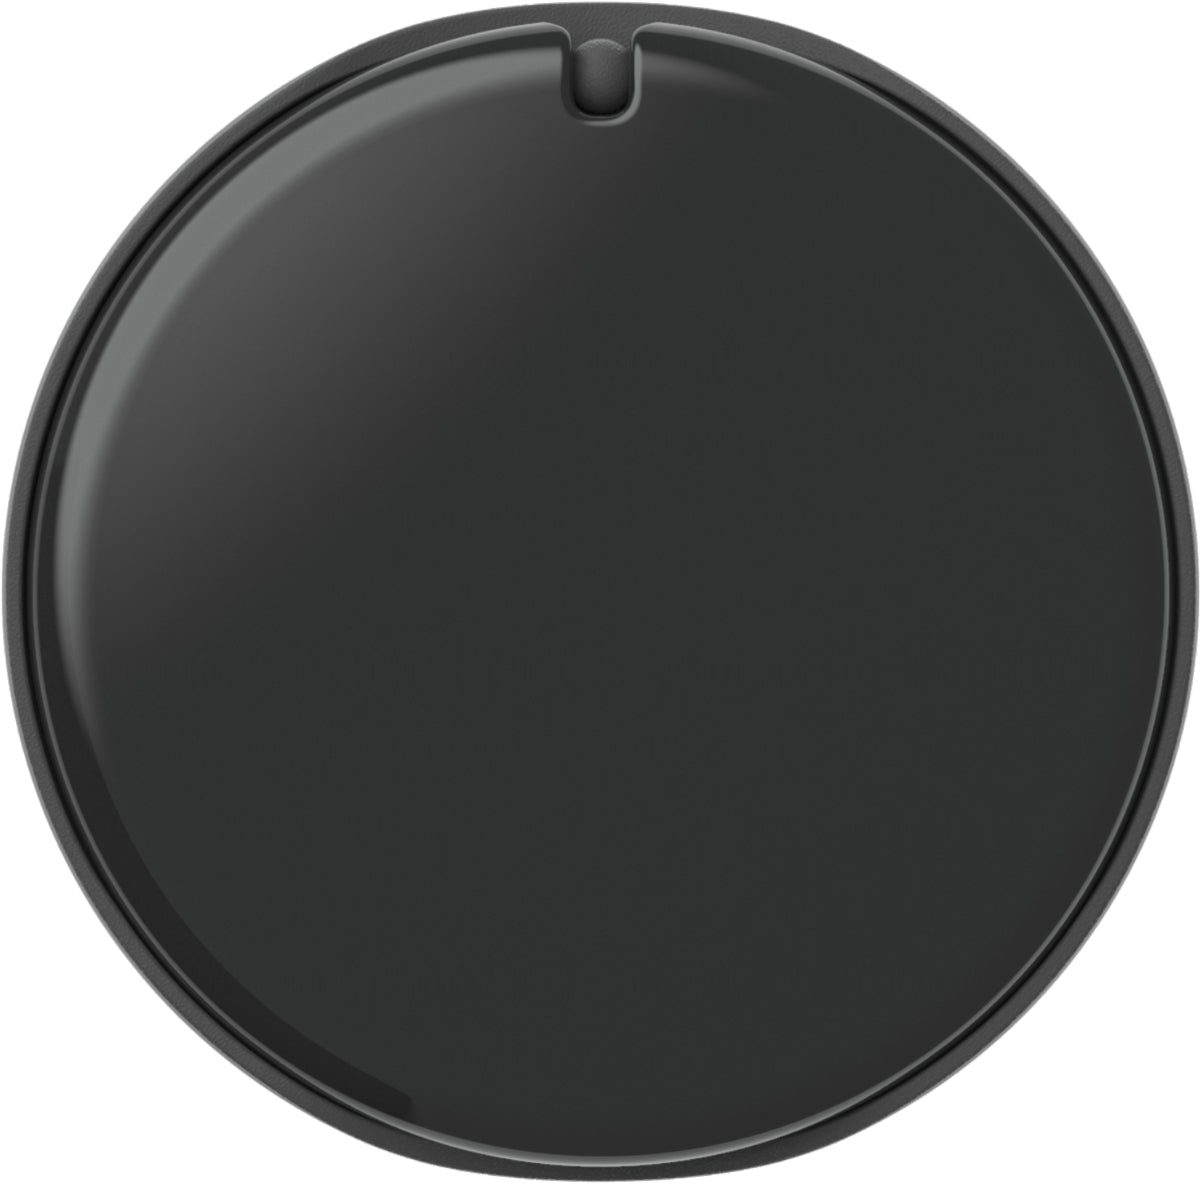 PopSockets PopMirror - Black Gloss, PopSockets